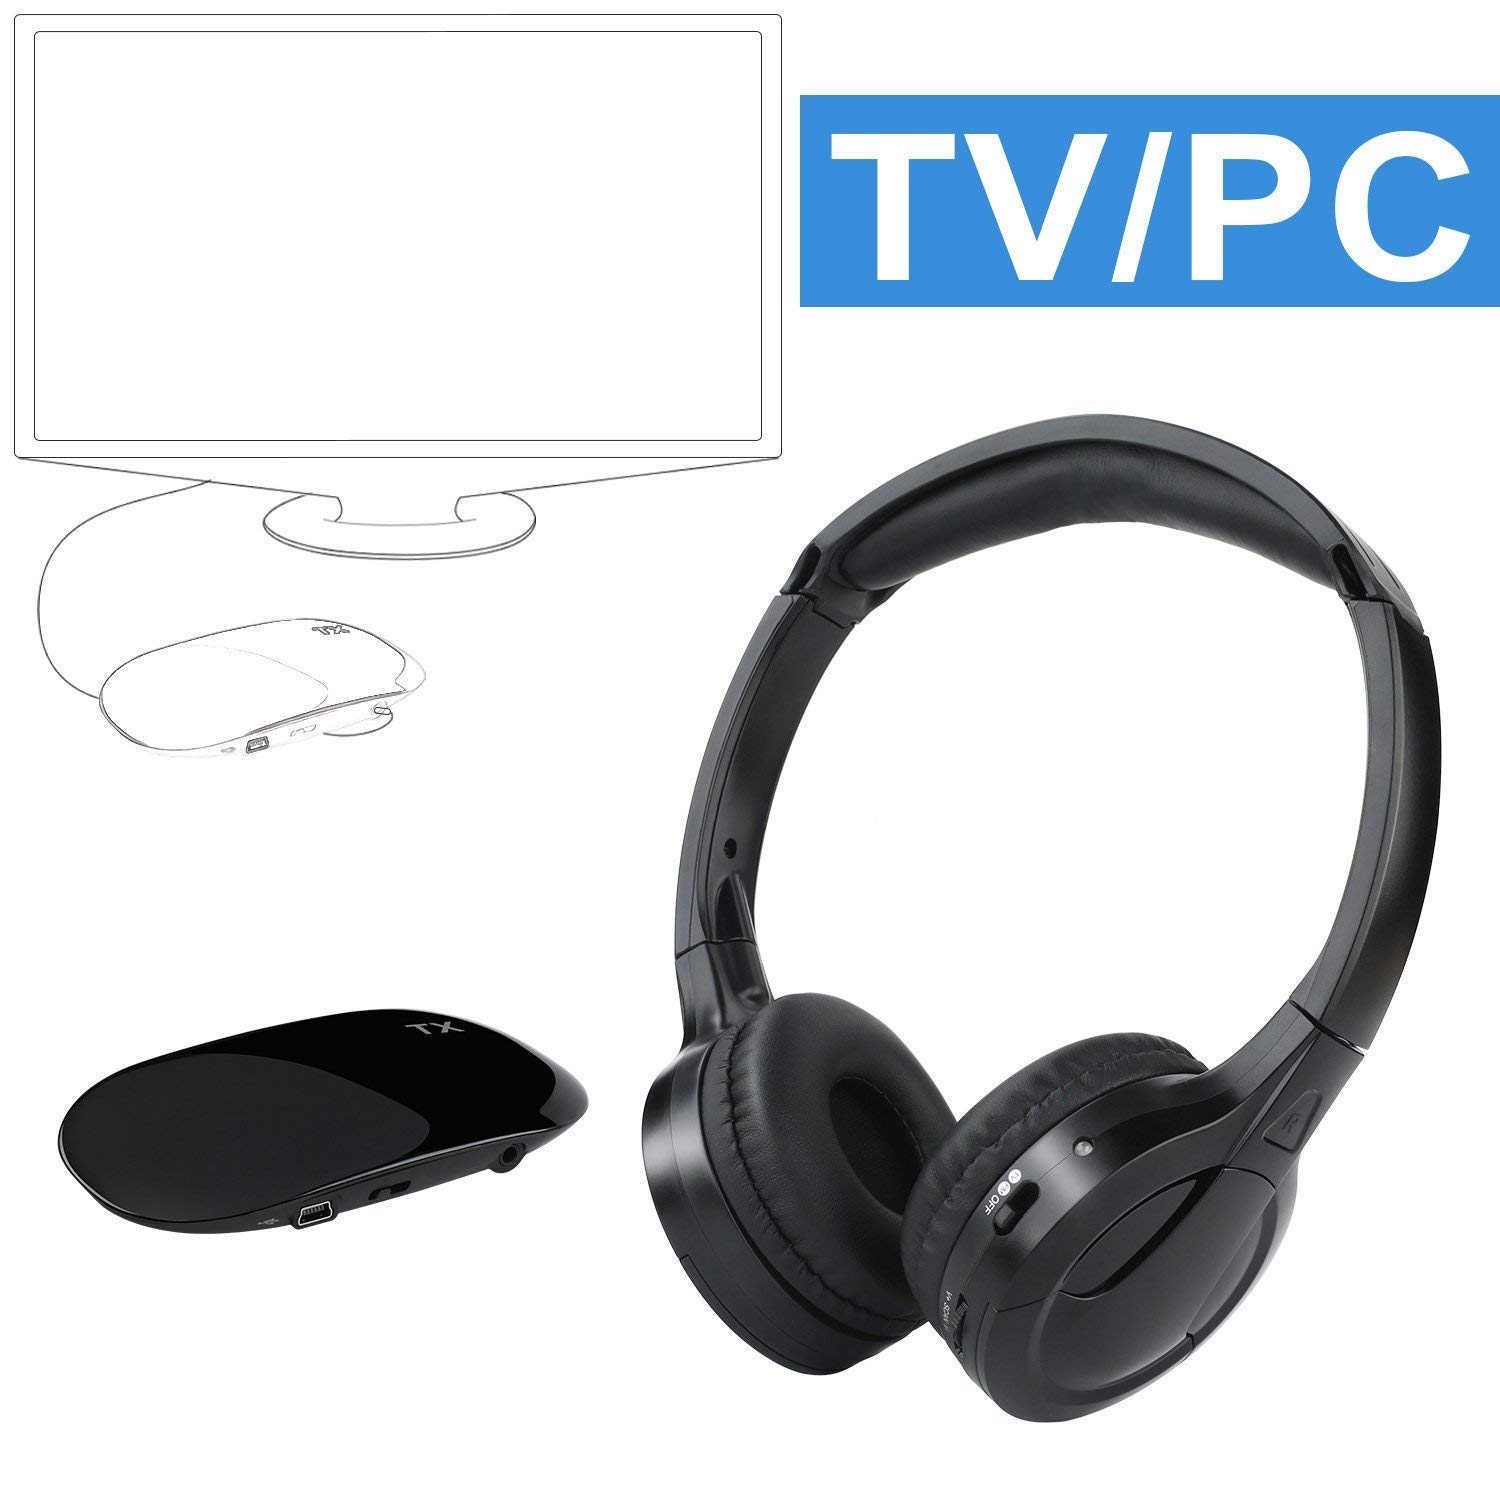 Wireless Headphones for TV, Jelly Comb TV Wireless Headphones with 3.5mm Audio-Out Jack and RCA Audio-Out for TV, Cell Phone, Laptop, Upgraded Auto Scan and Auto Sleep (Black)